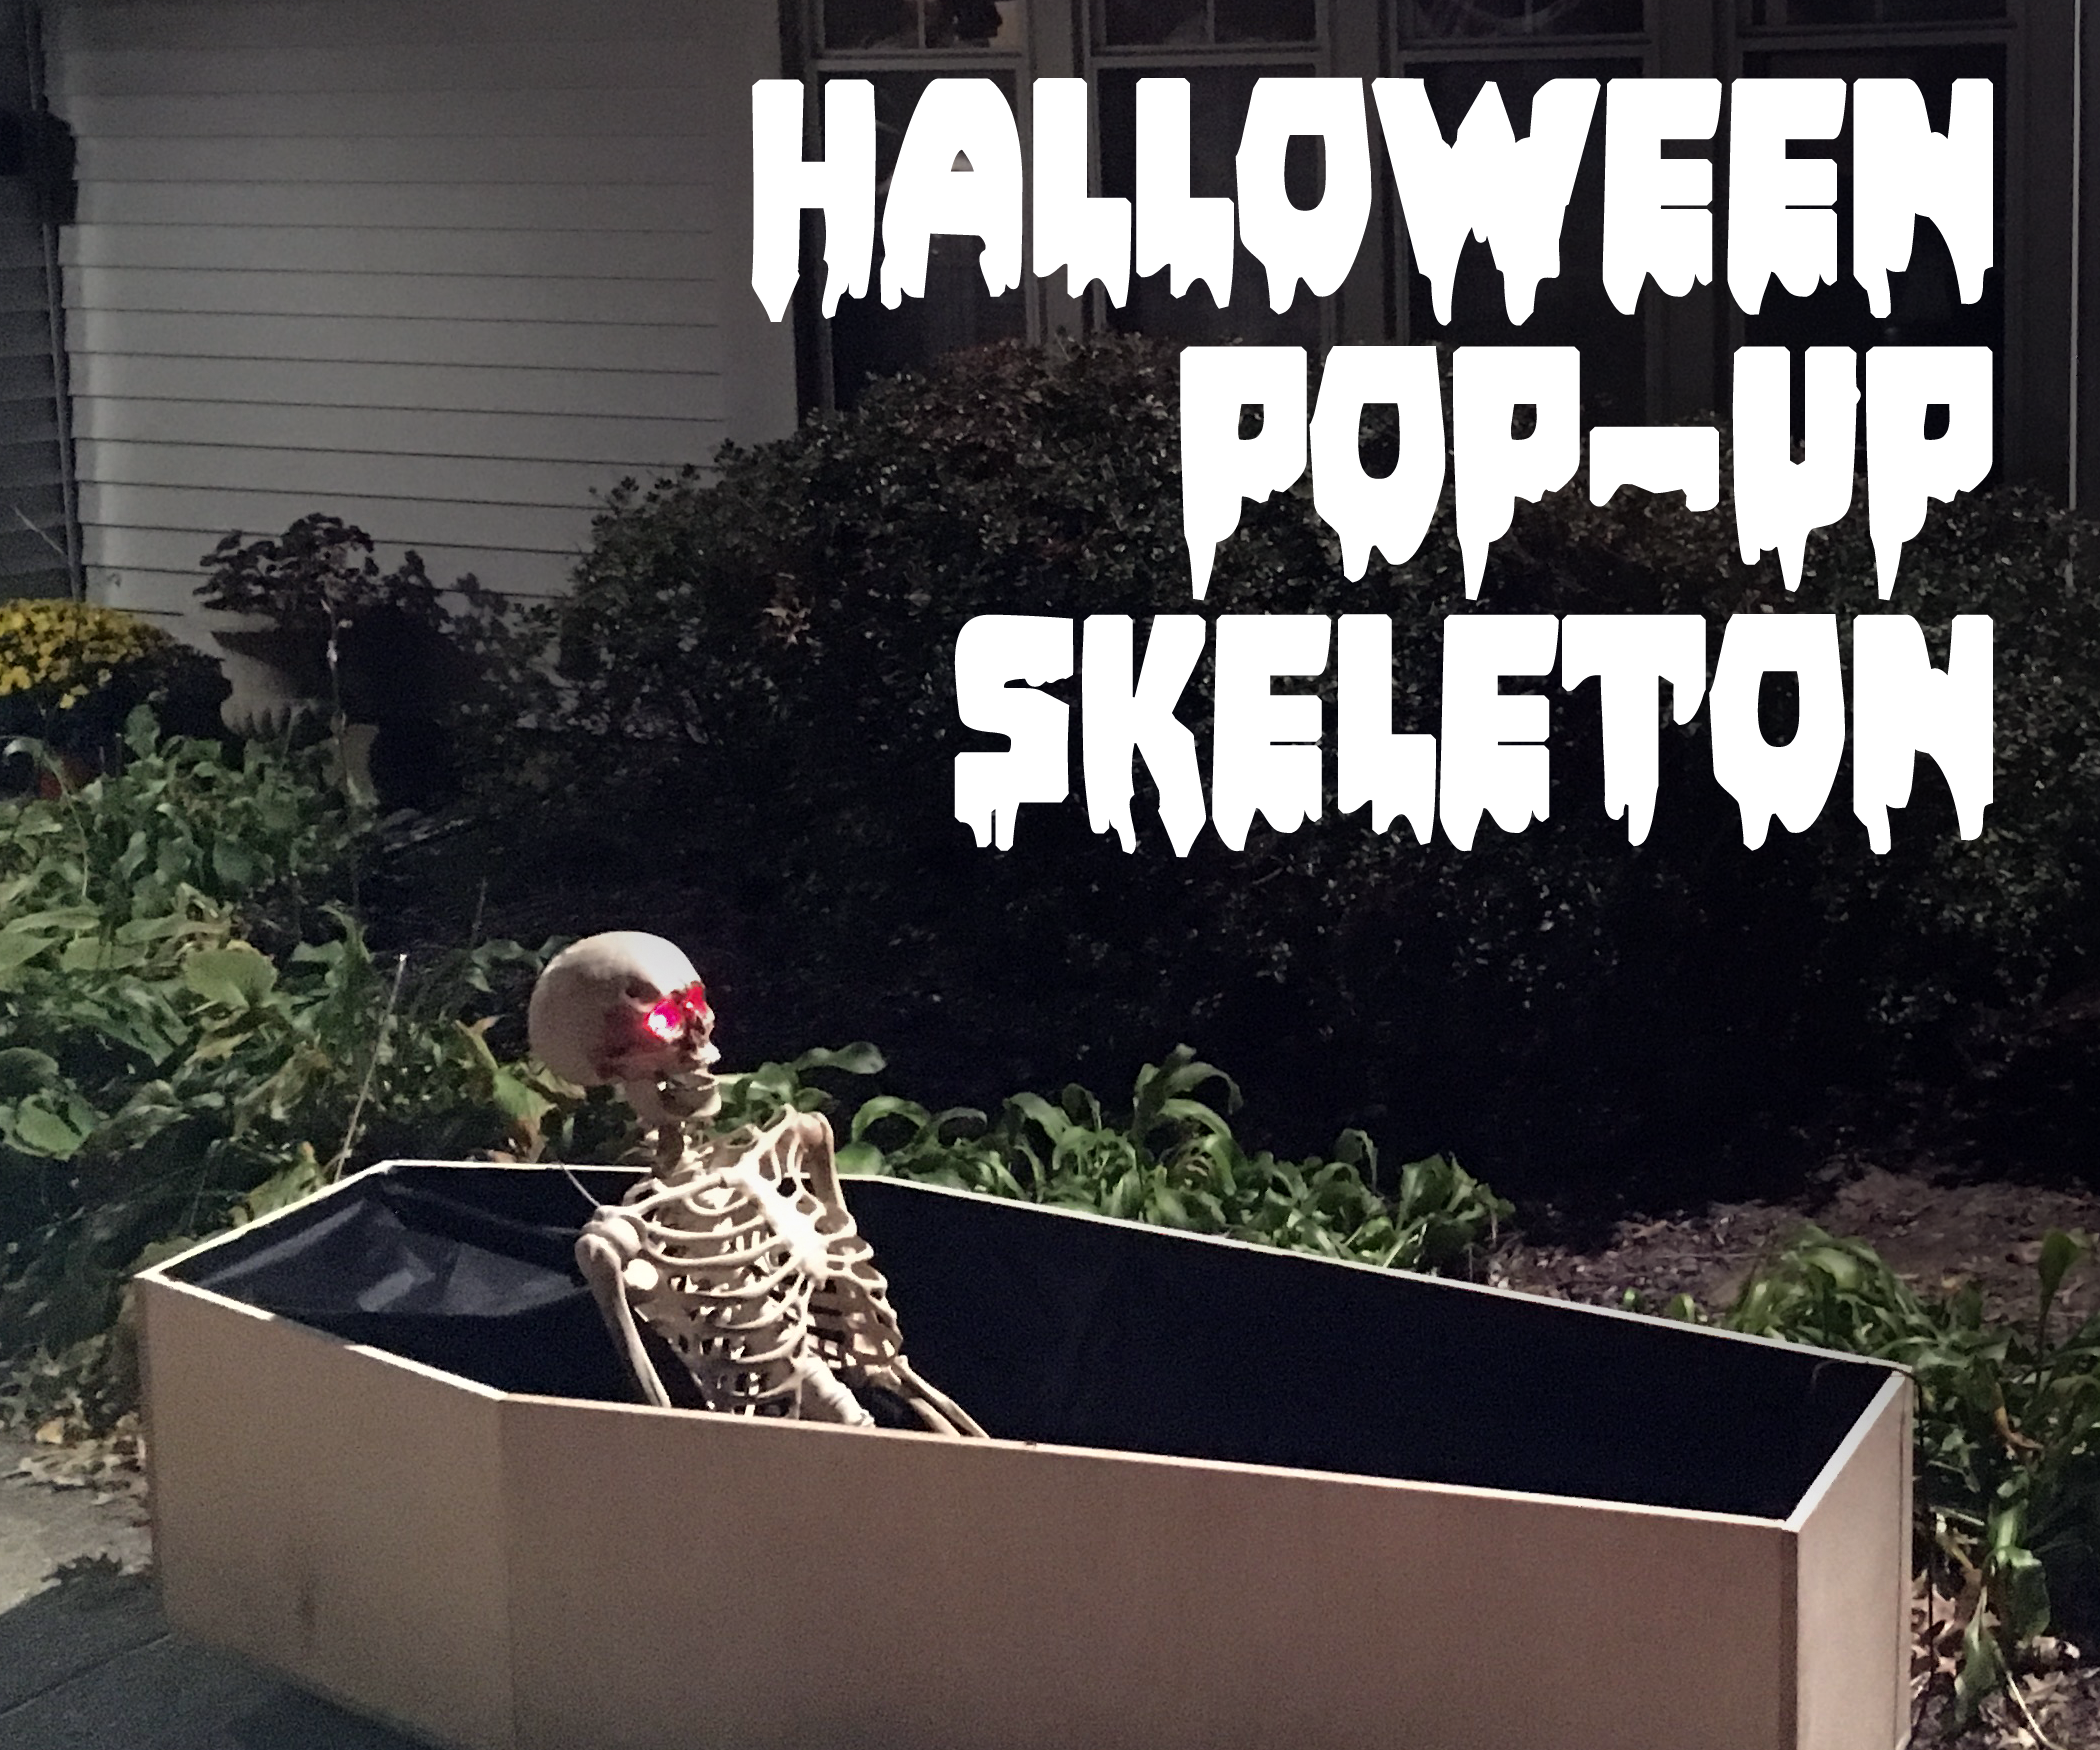 Halloween Pop-Up Skeleton (In a Coffin)